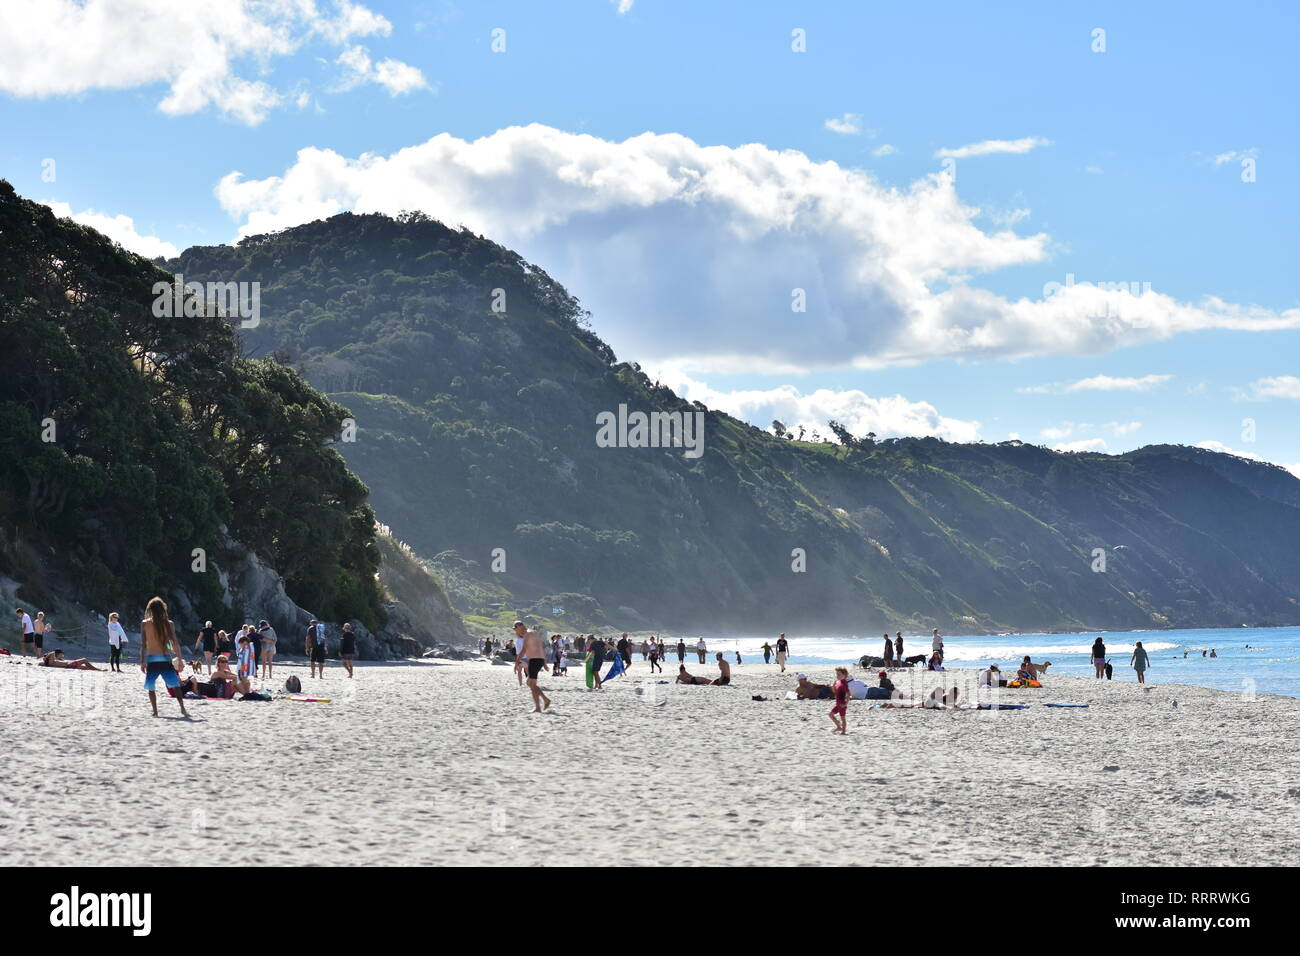 Crowds of people enjoying sunny day on flat sandy Pacific Ocean beach in Mangawhai Heads with steep hills in background. - Stock Image